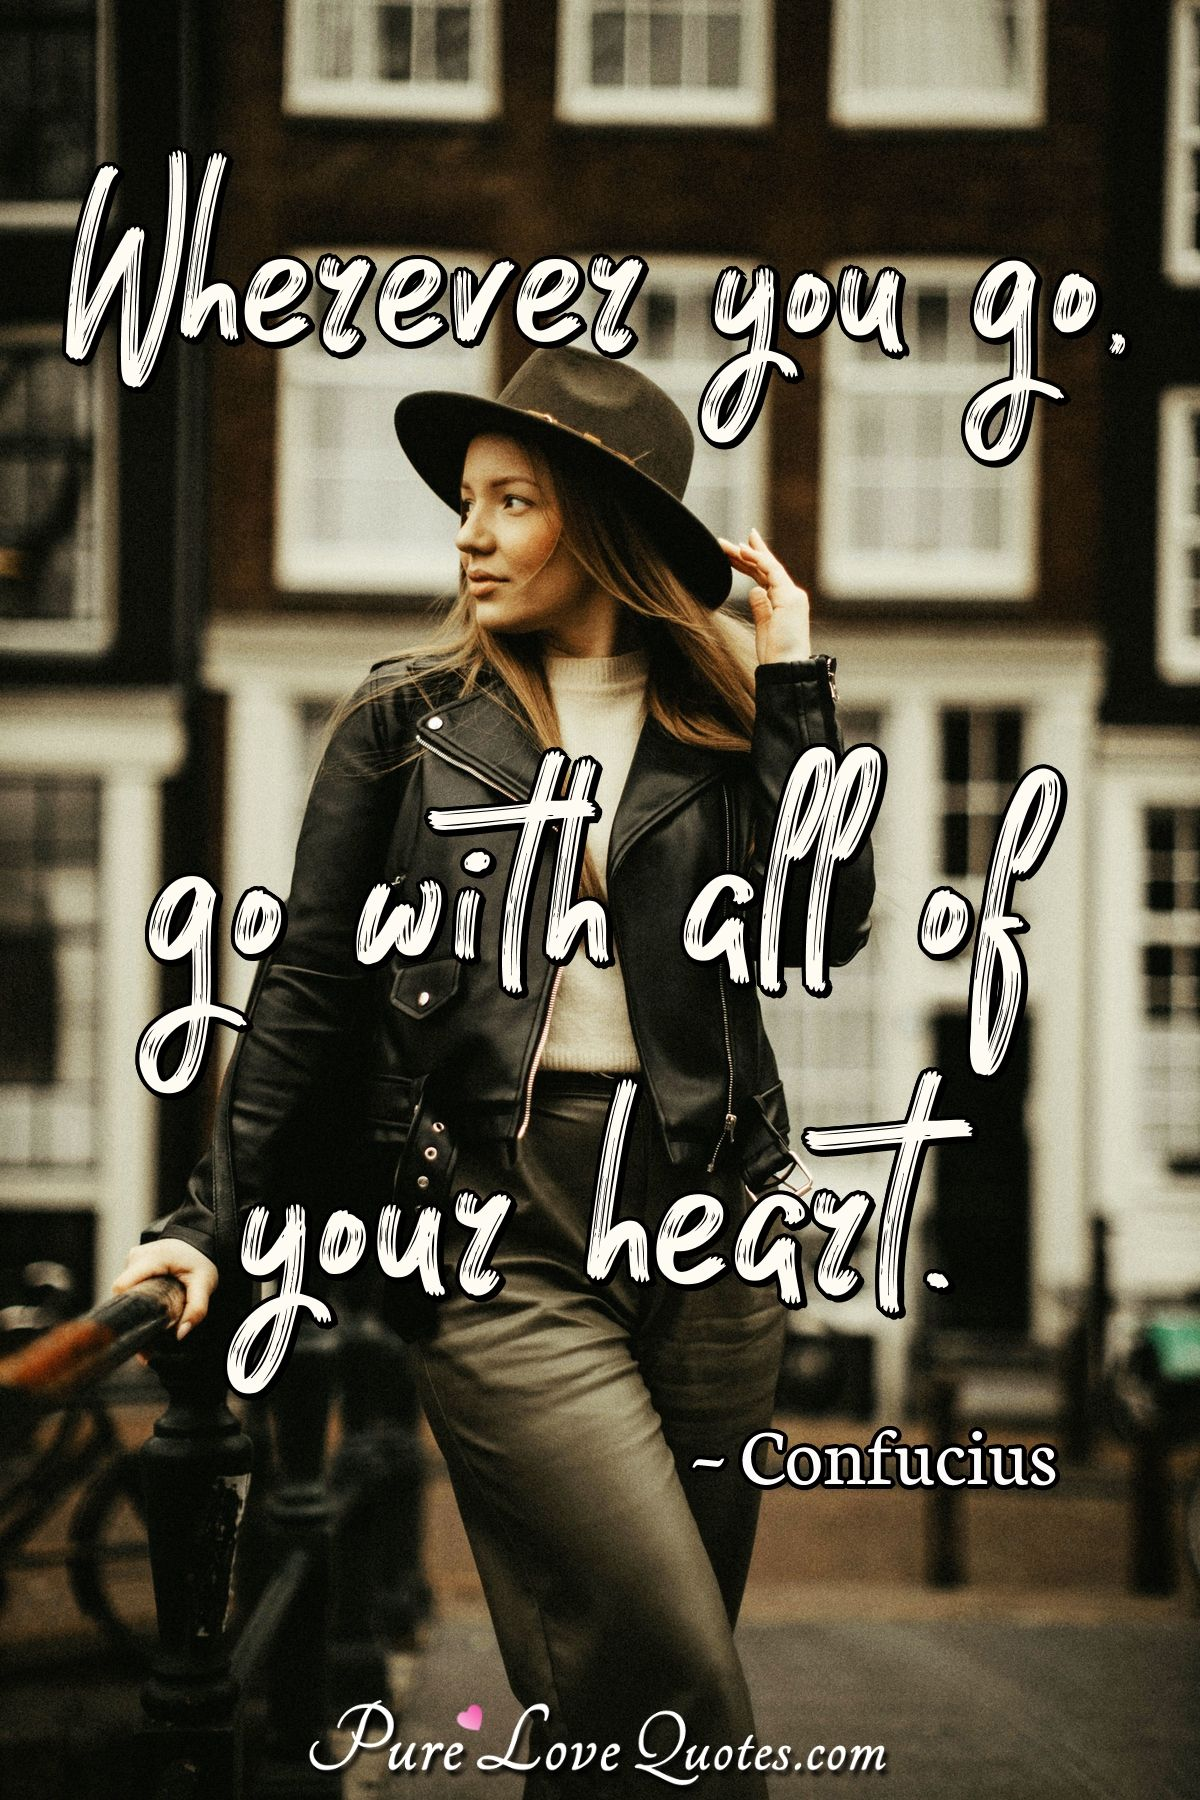 Wherever you go, go with all of your heart. - Confucius